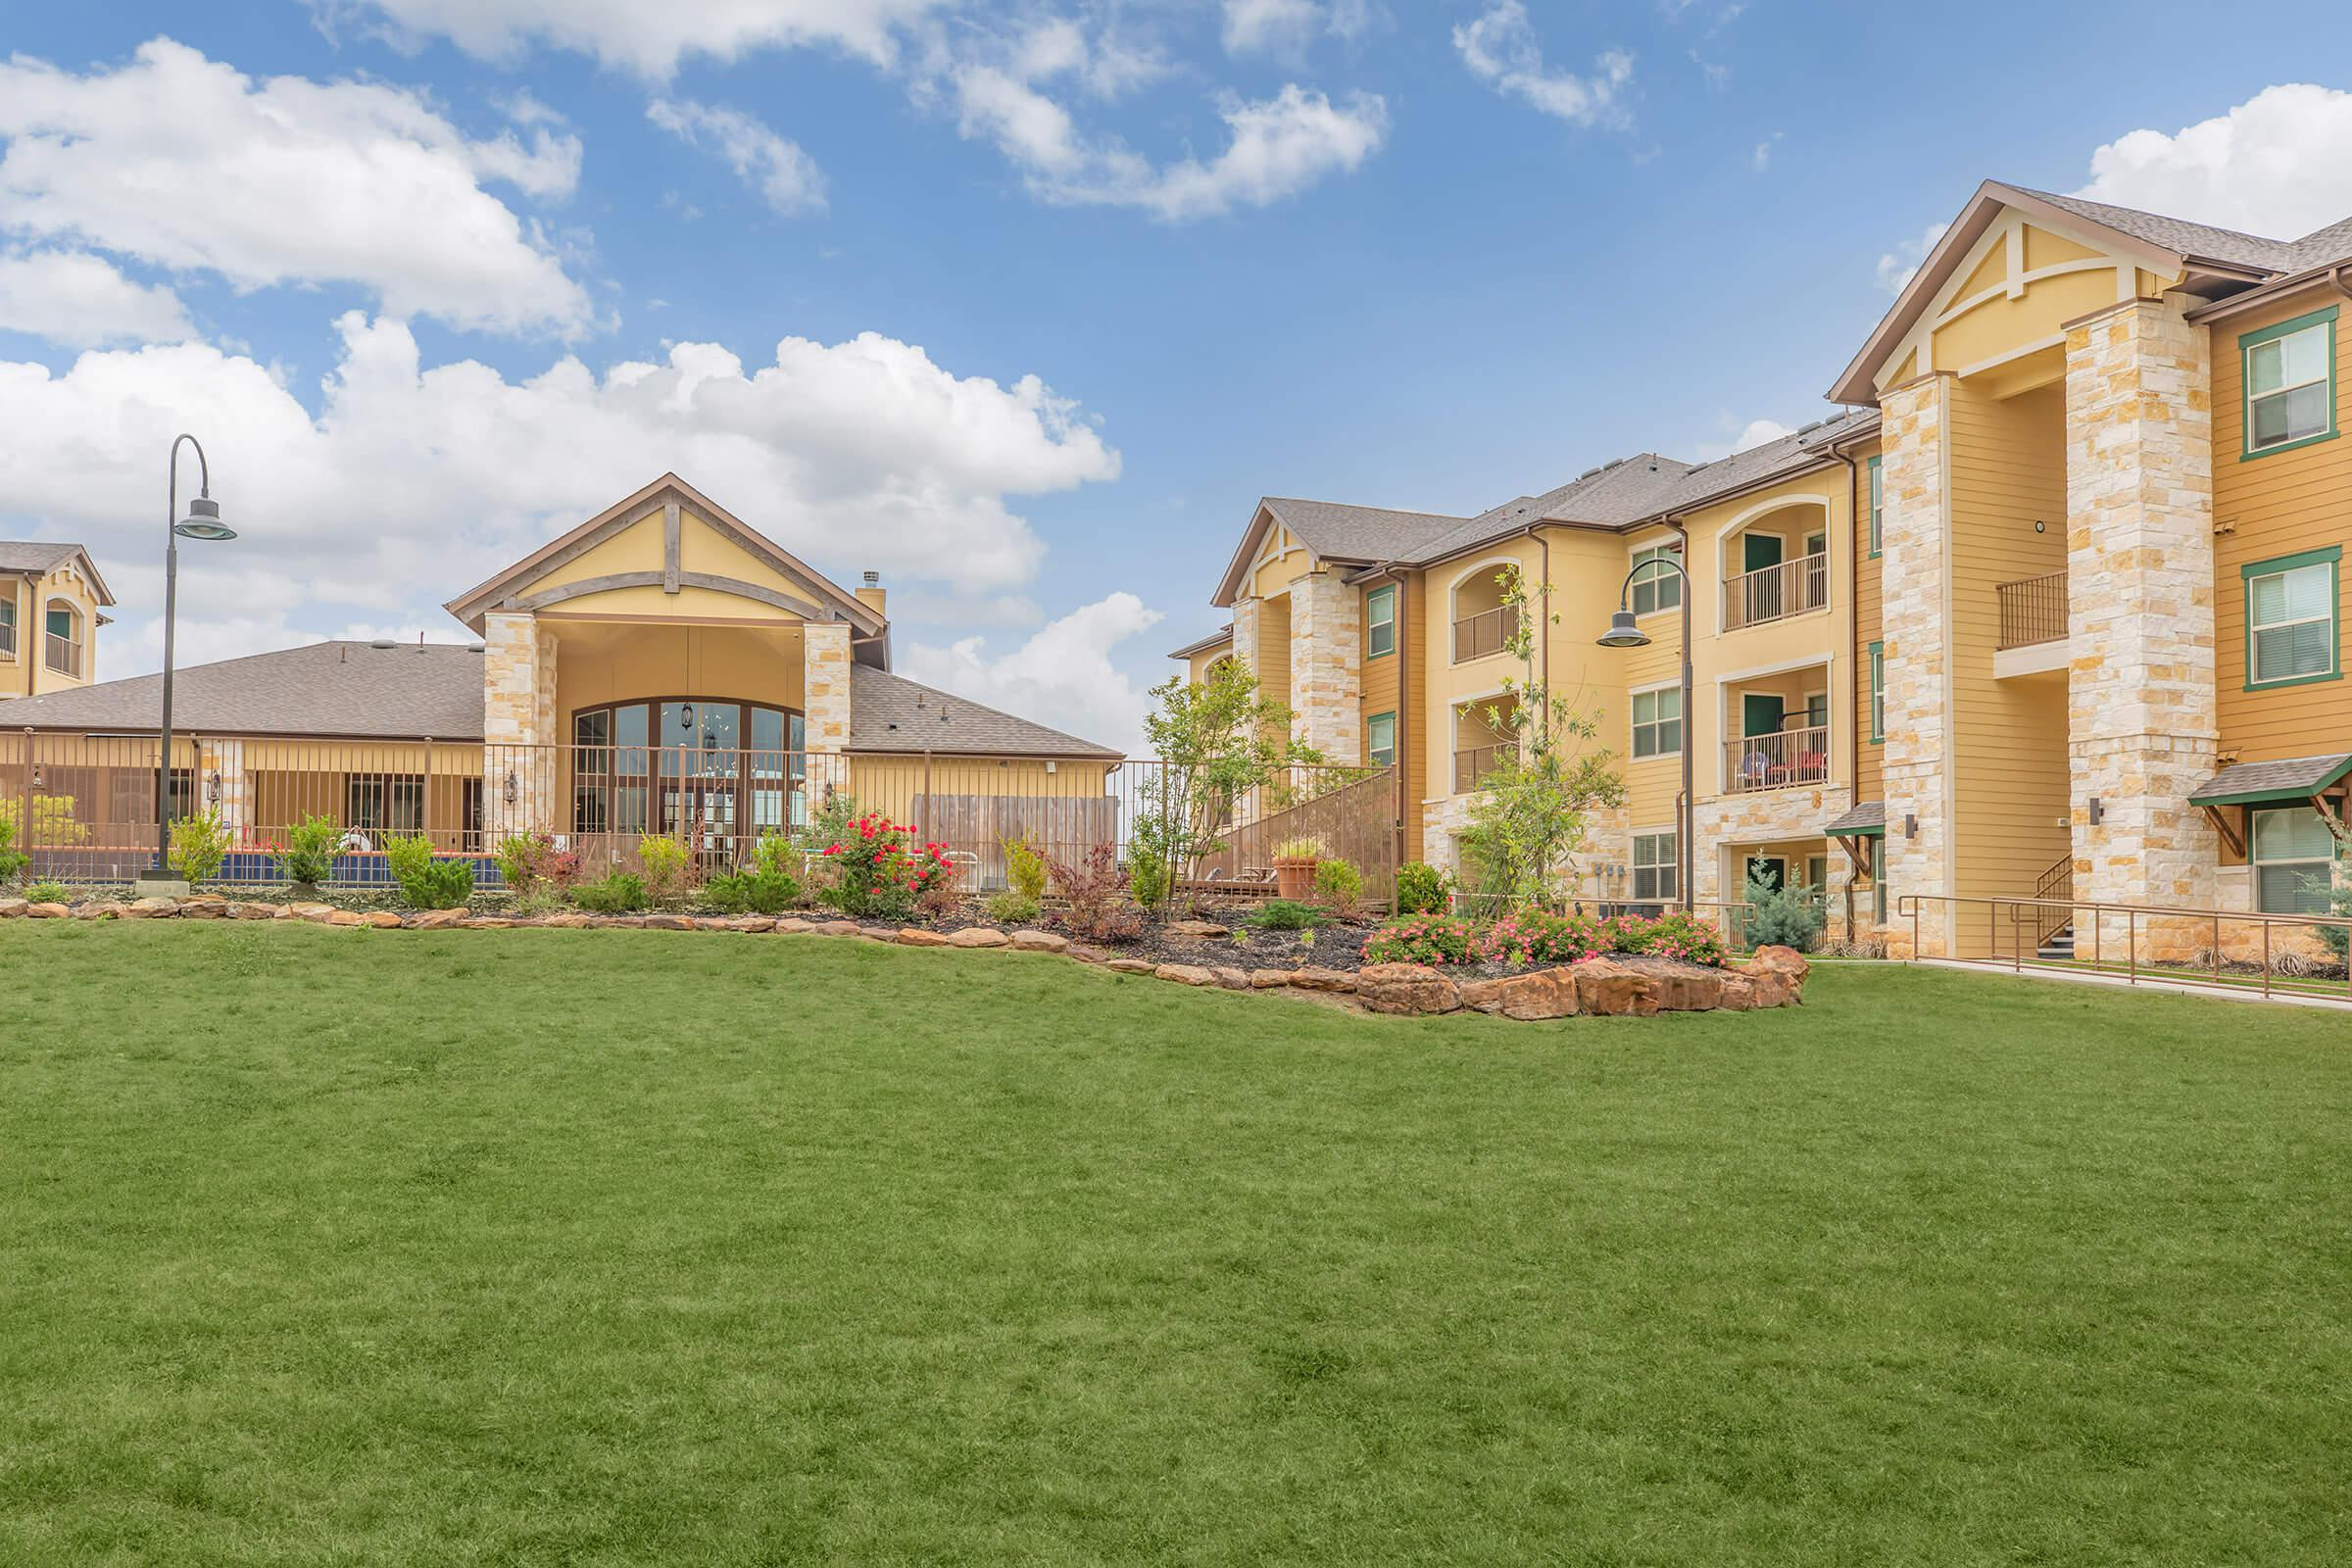 WELCOME TO THE WEST HILL APARTMENTS IN HUNTSVILLE, TEXAS